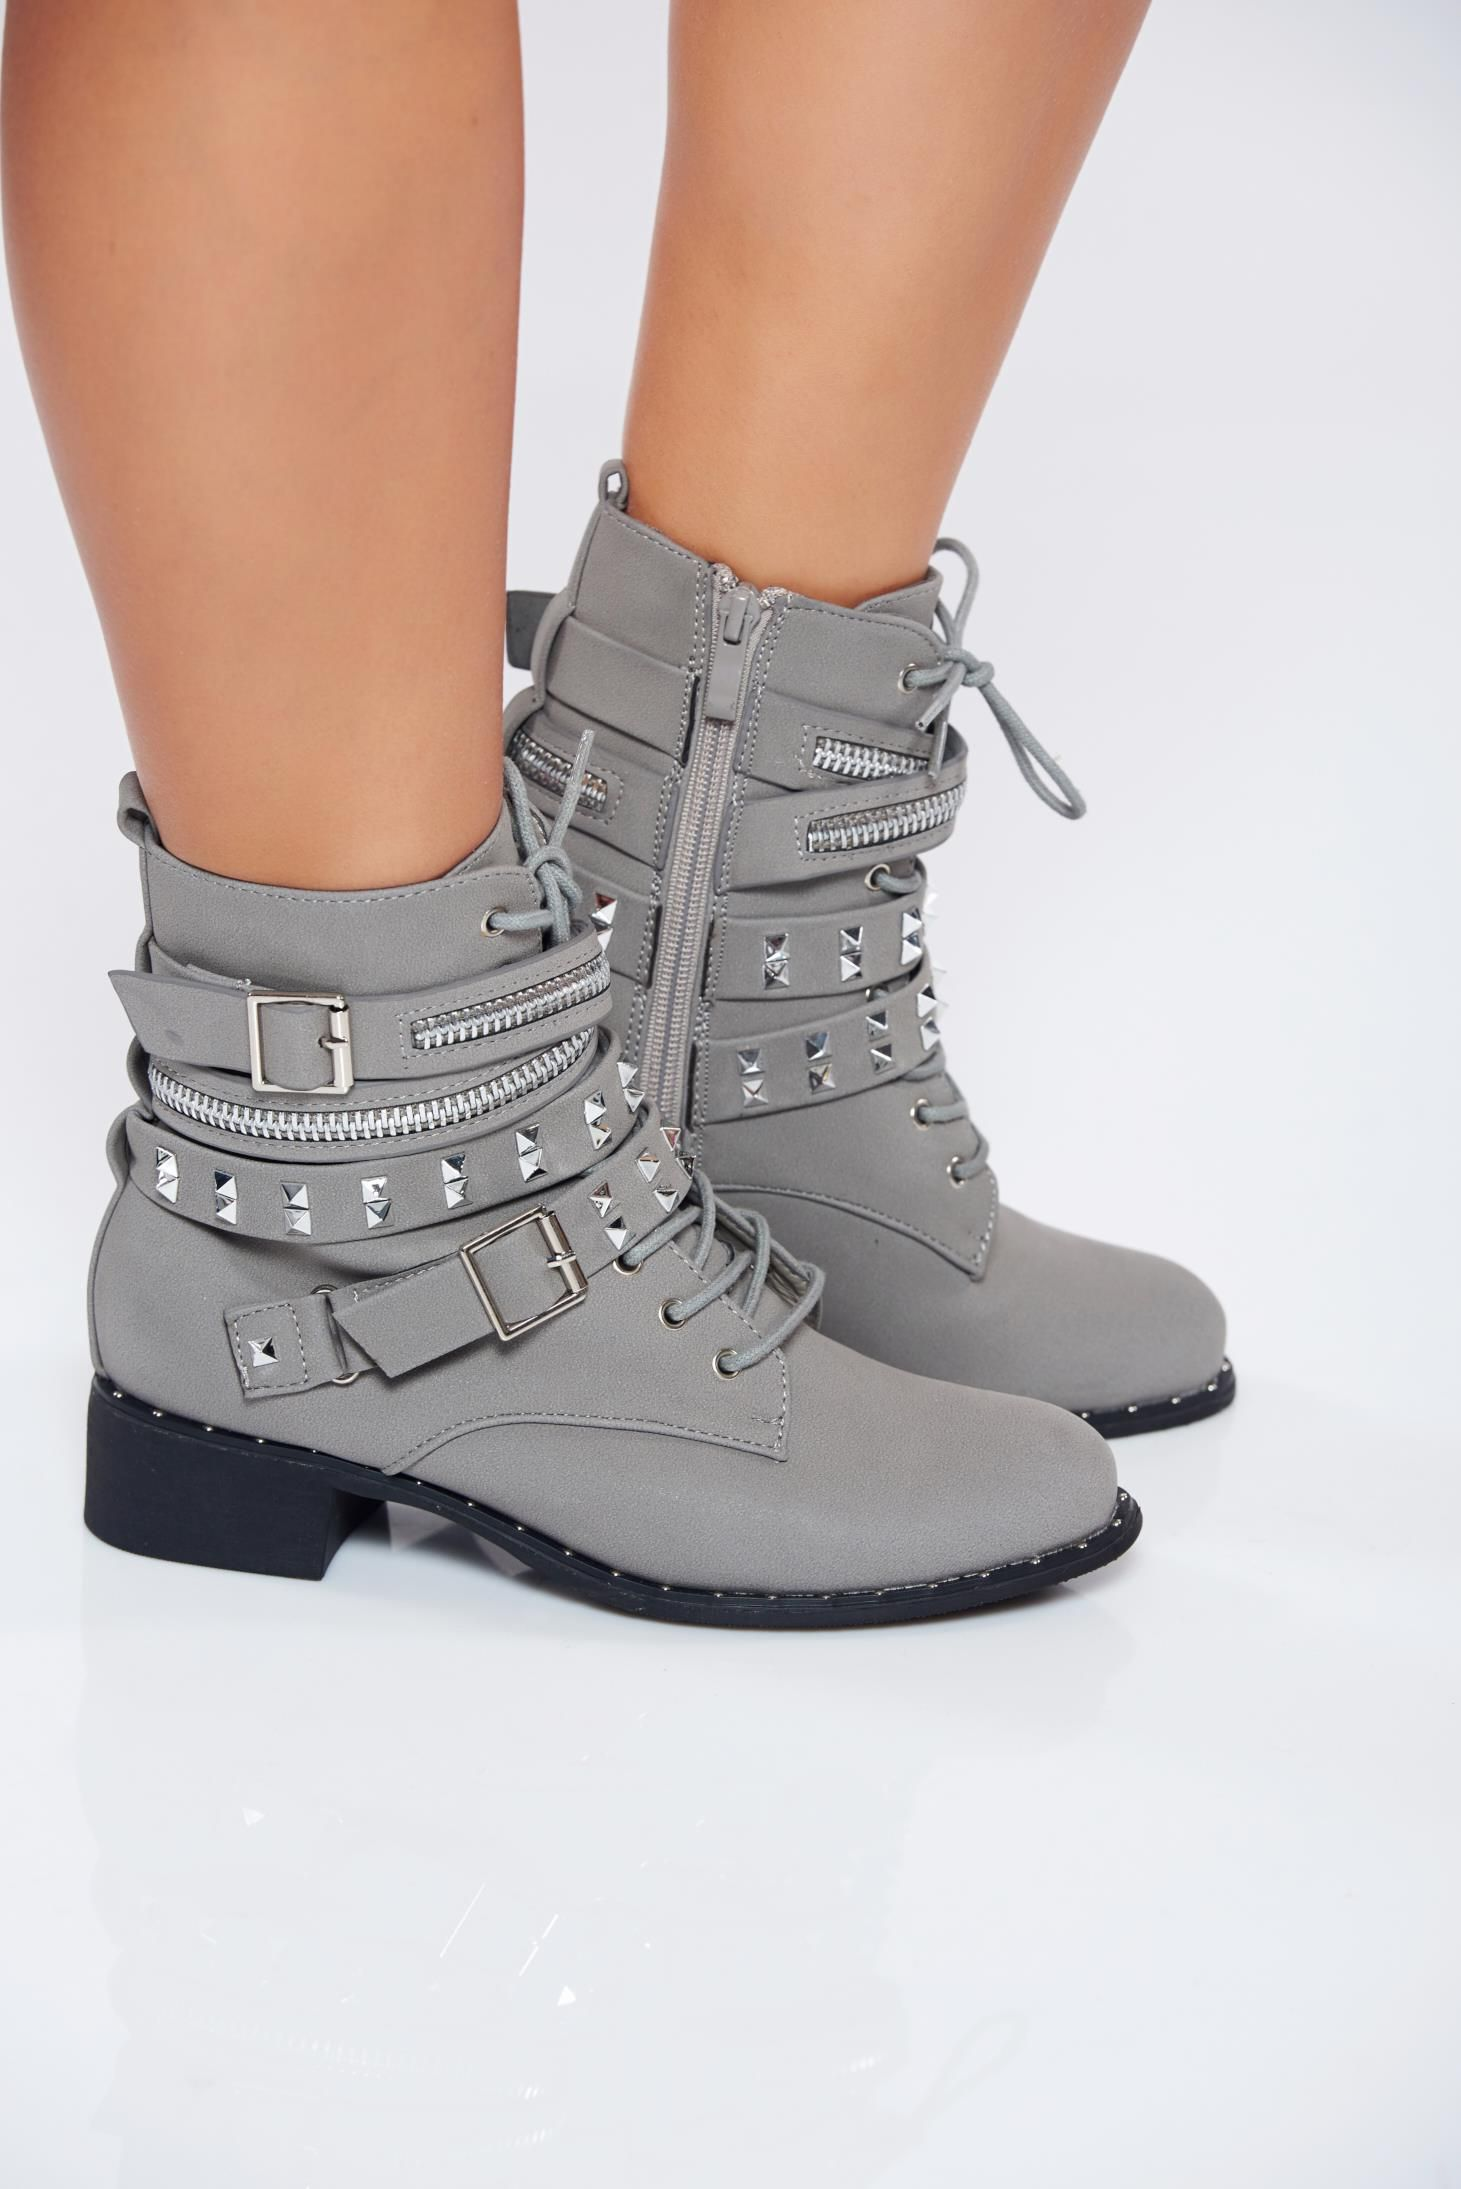 e01149bdcba Grey casual ecological leather tramper with metallic spikes, with lace,  metallic spikes, buckles accessories, side zip fastening, low heel,  slightly round ...